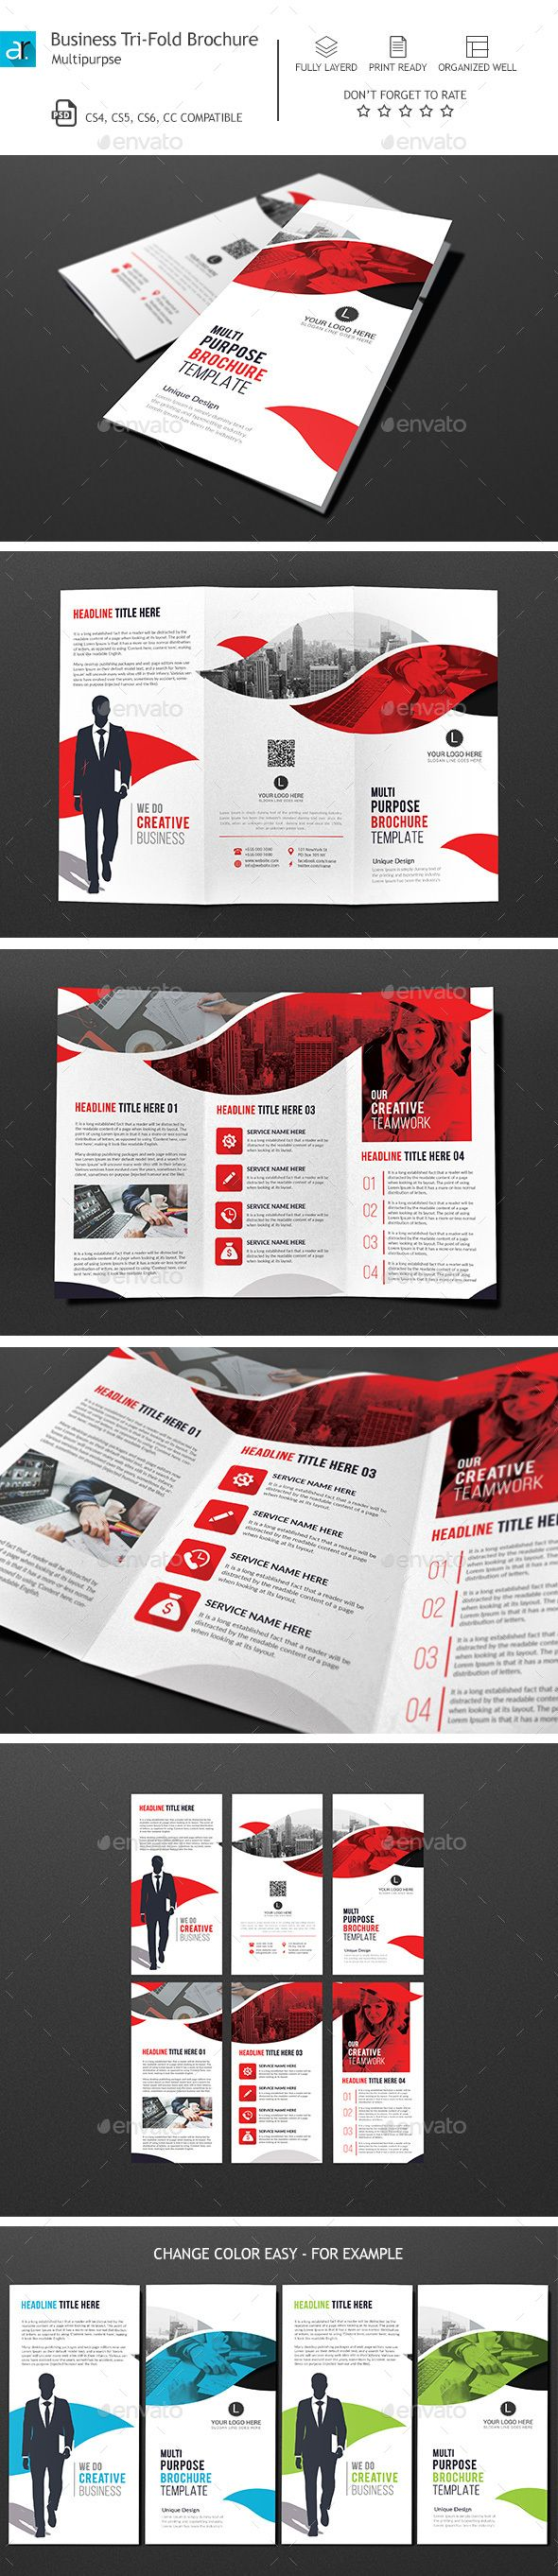 Corporate TriFold Brochure 02 — Photoshop PSD #a4 #trifold brochure • Available here → https://graphicriver.net/item/corporate-trifold-brochure-02/14729151?ref=pxcr